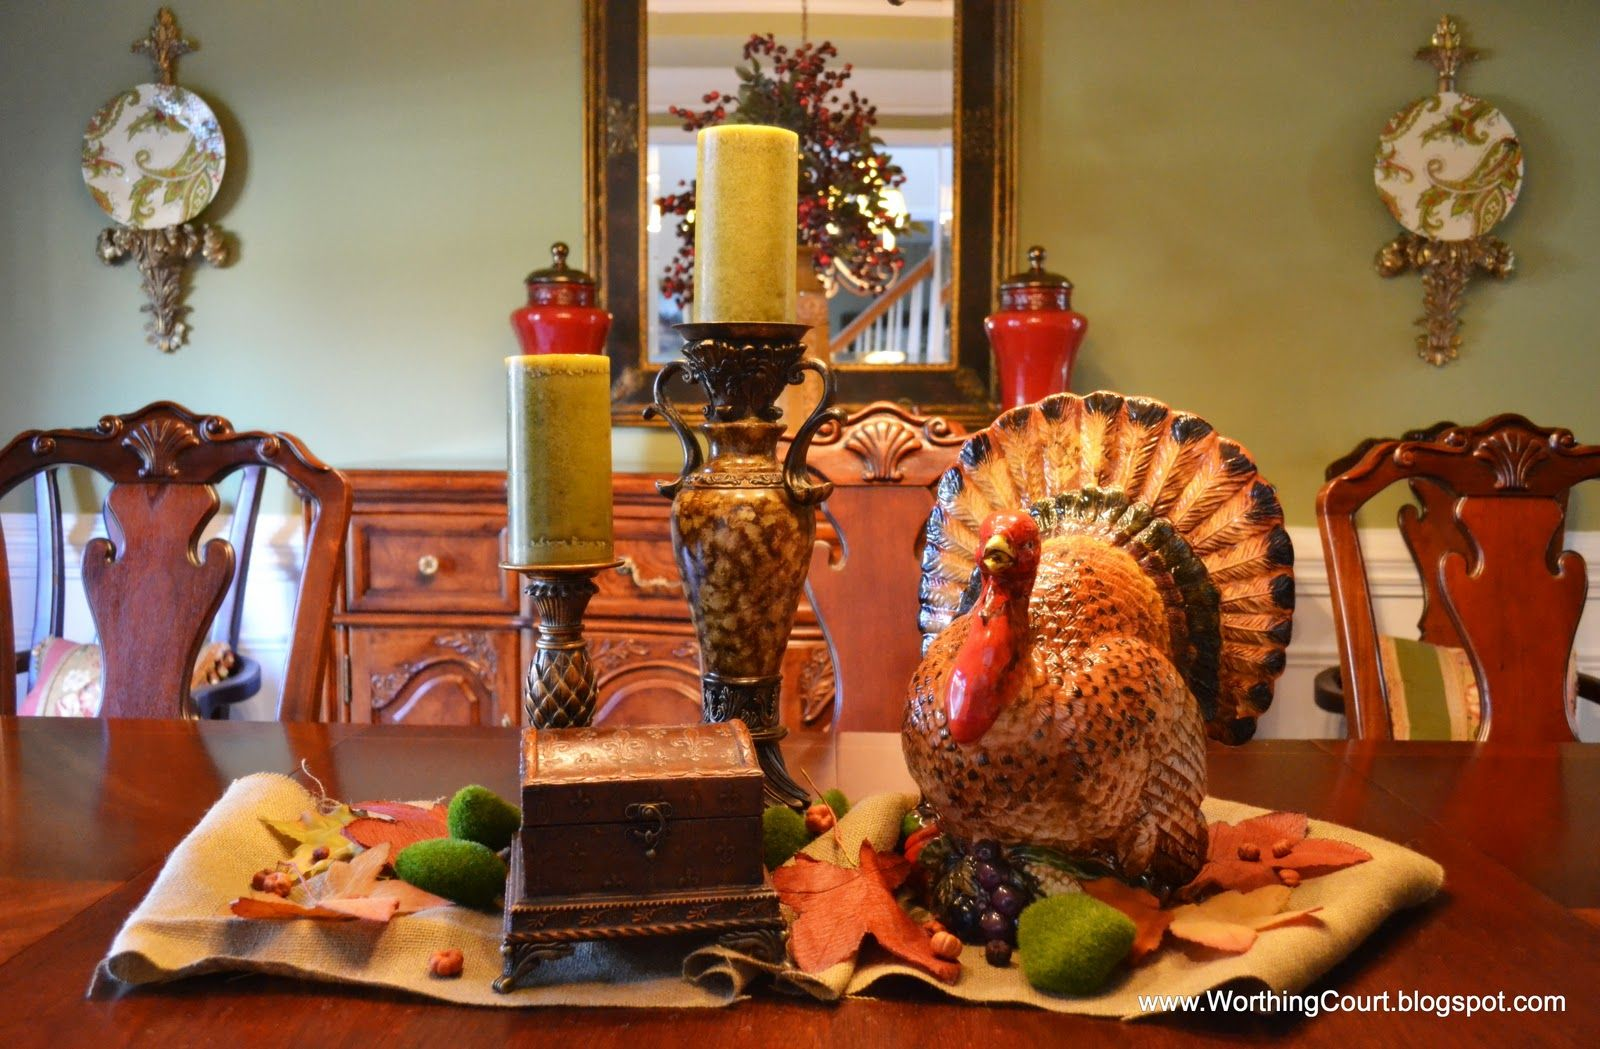 Decoration, Interior Inspiring And Remarkable Vintage Luxurious  Thanksgiving Dining Table Centerpiece Decoration Beautiful Thanksgiving Table  Centerpiece ...